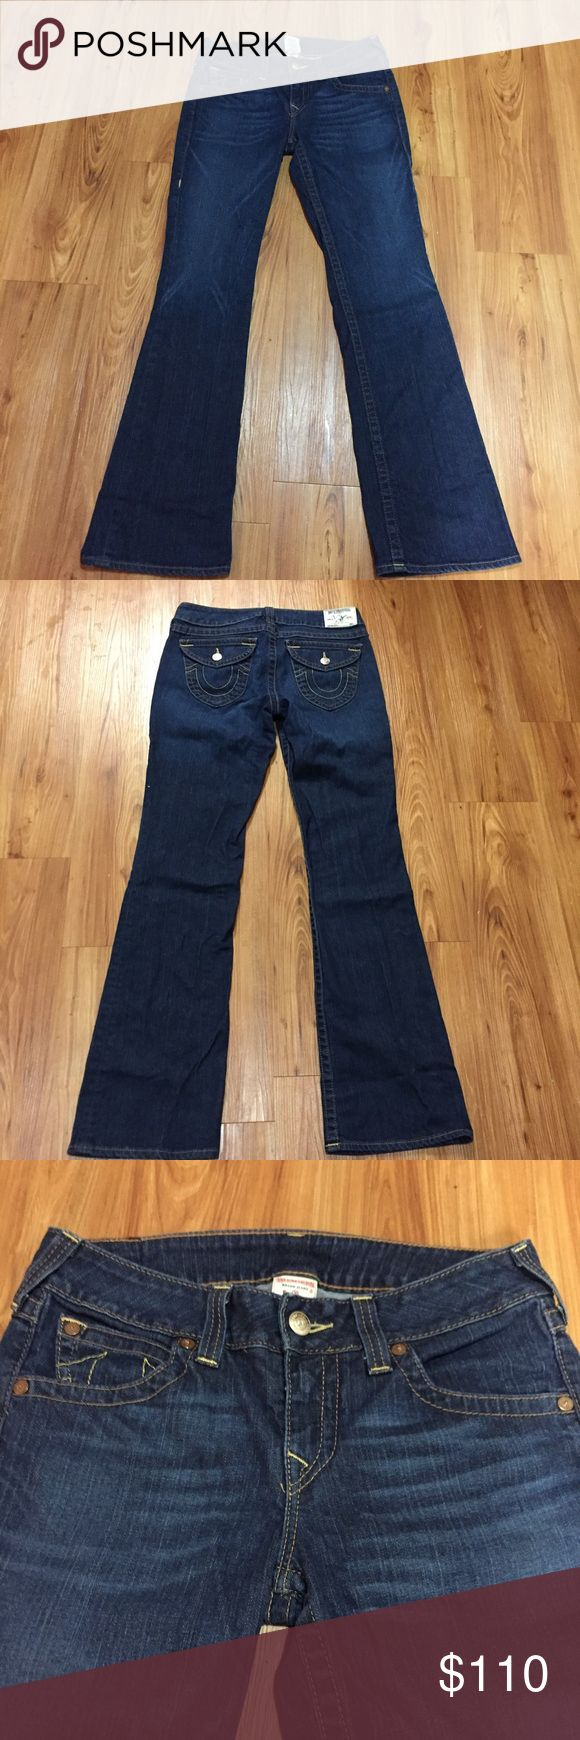 "True Religion Bootcut Jeans Dark rinse True Religion Becky bootcut jeans. Size 31. EUC.  Waist: 34"" Inseam: 34""  Wedding sale! Just ask and I will drop the price 20%. 40% off bundles of 2 or more. Just make an offer for the appropriate discount. True Religion Jeans Boot Cut"